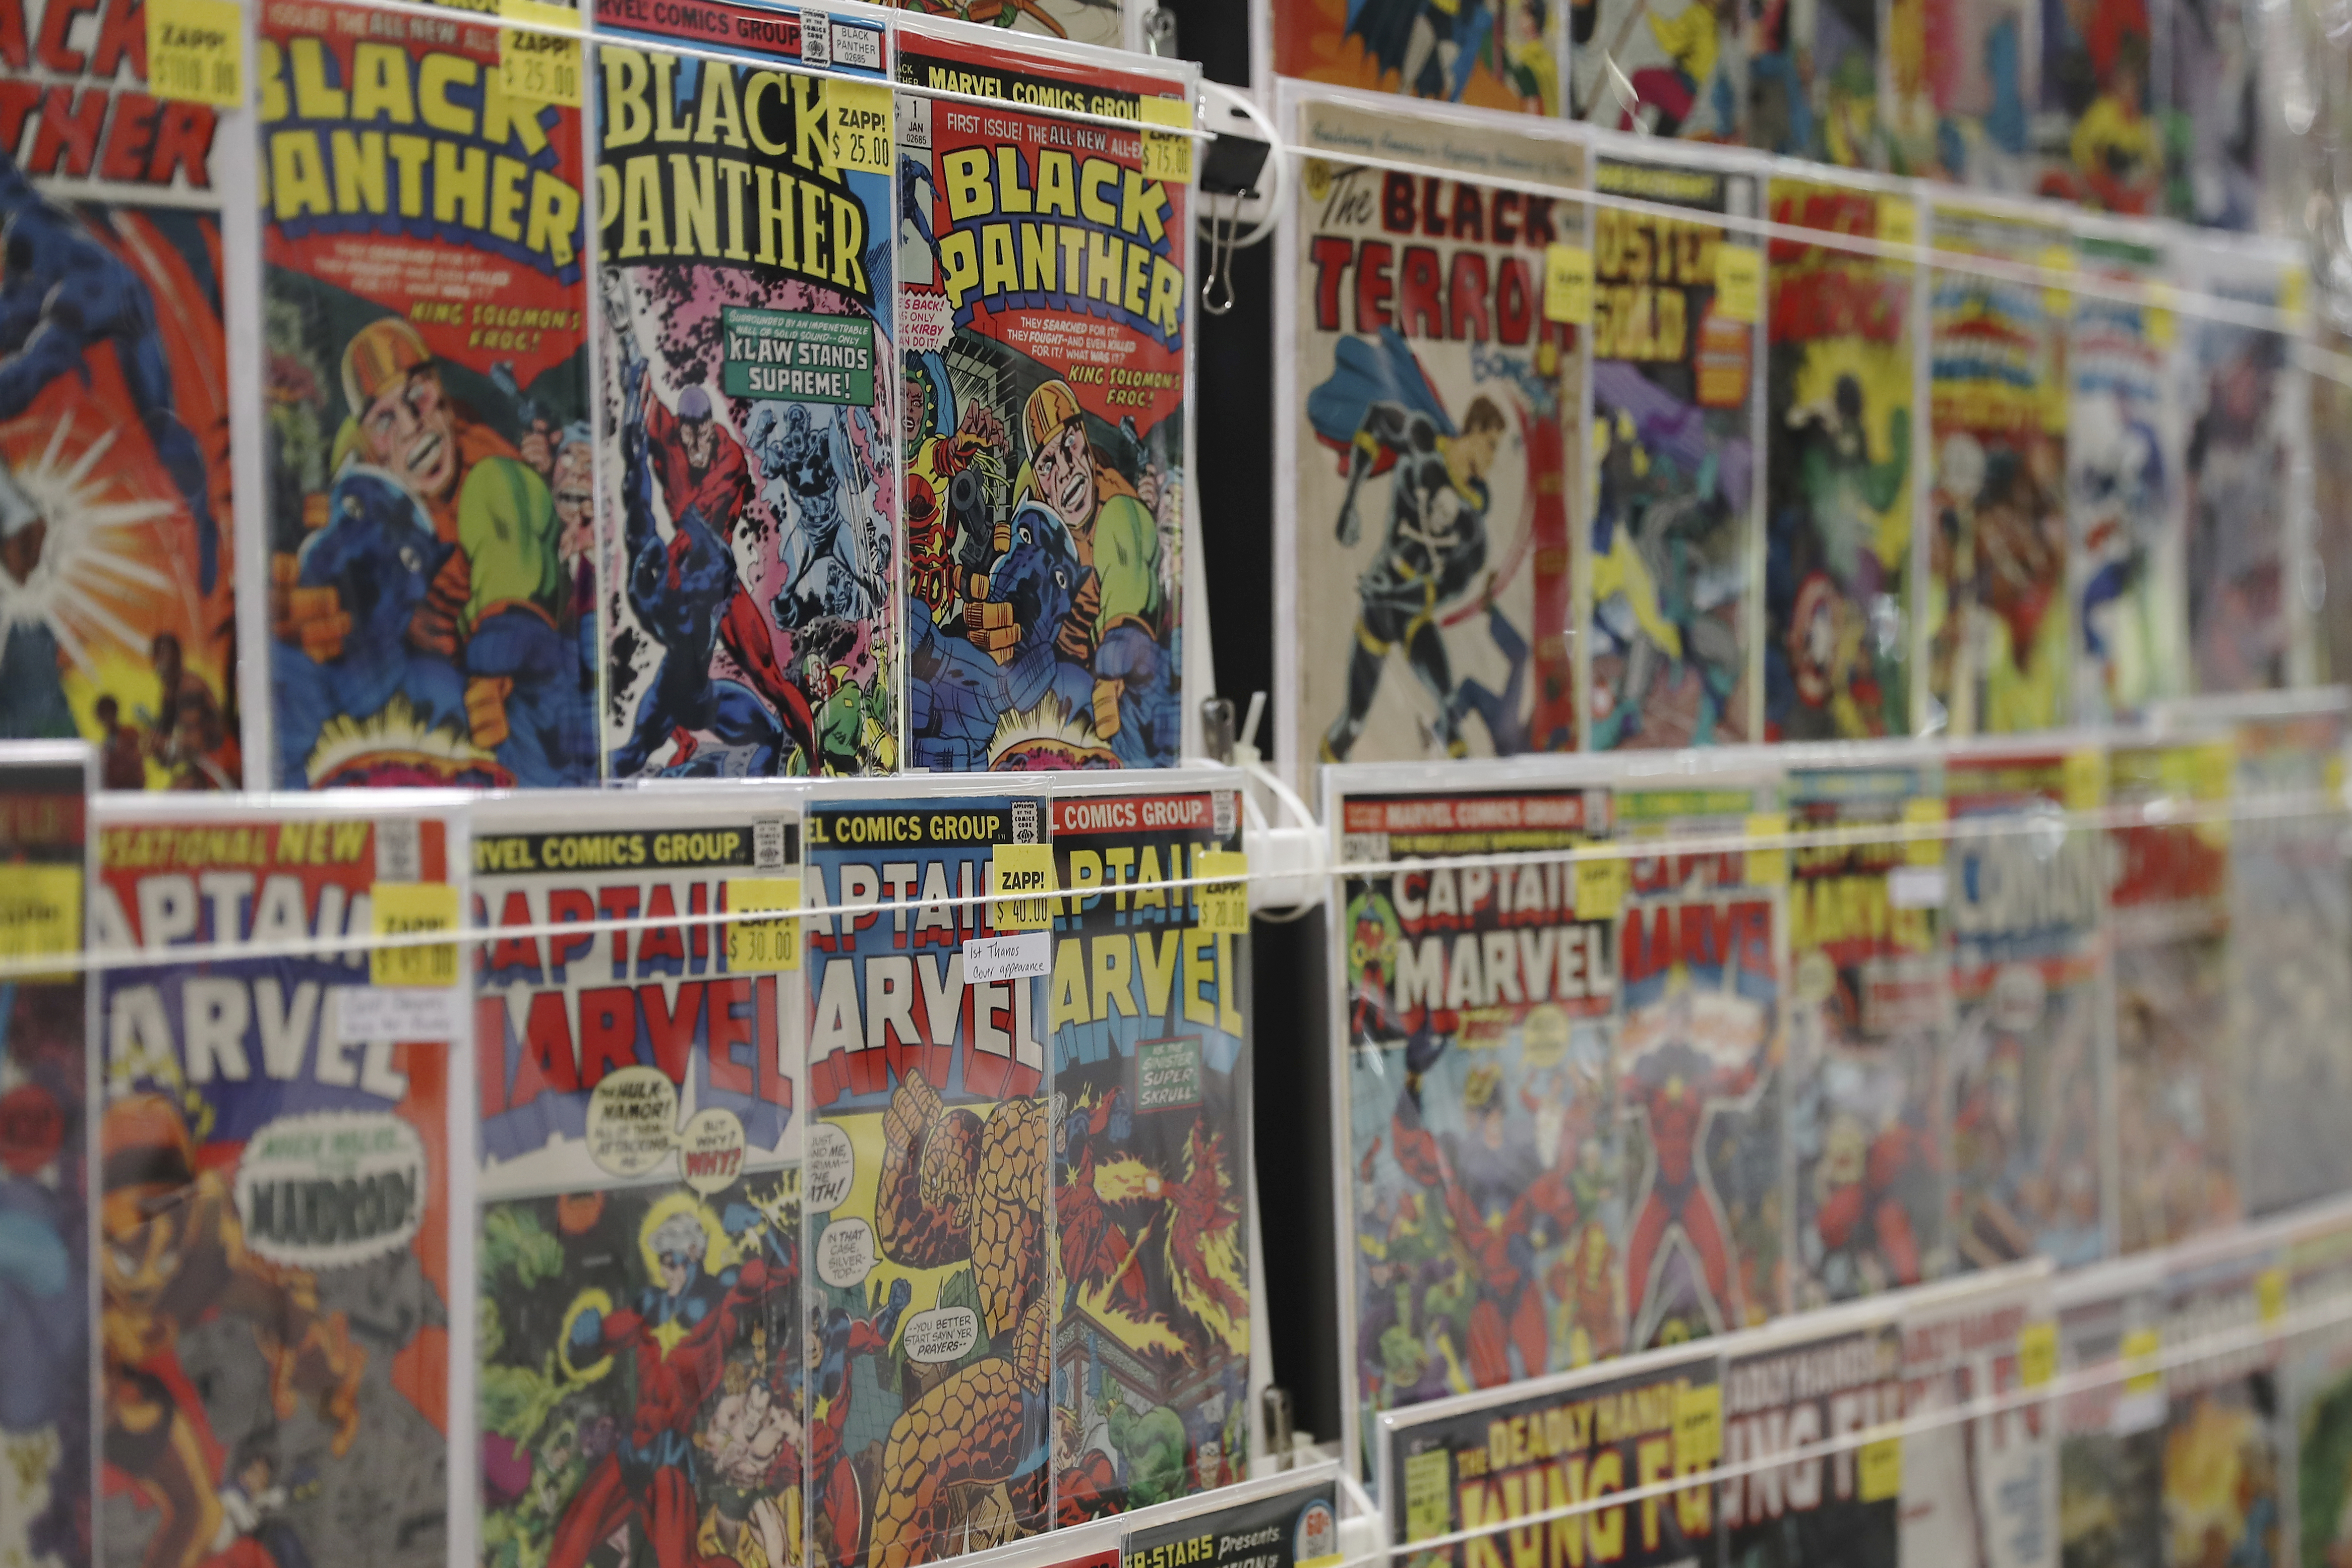 A general view of comic books set up at the Javits Center on the first day of New York Comic Con, Thursday, Oct. 3, 2019, in New York. (AP Photo/Steve Luciano)